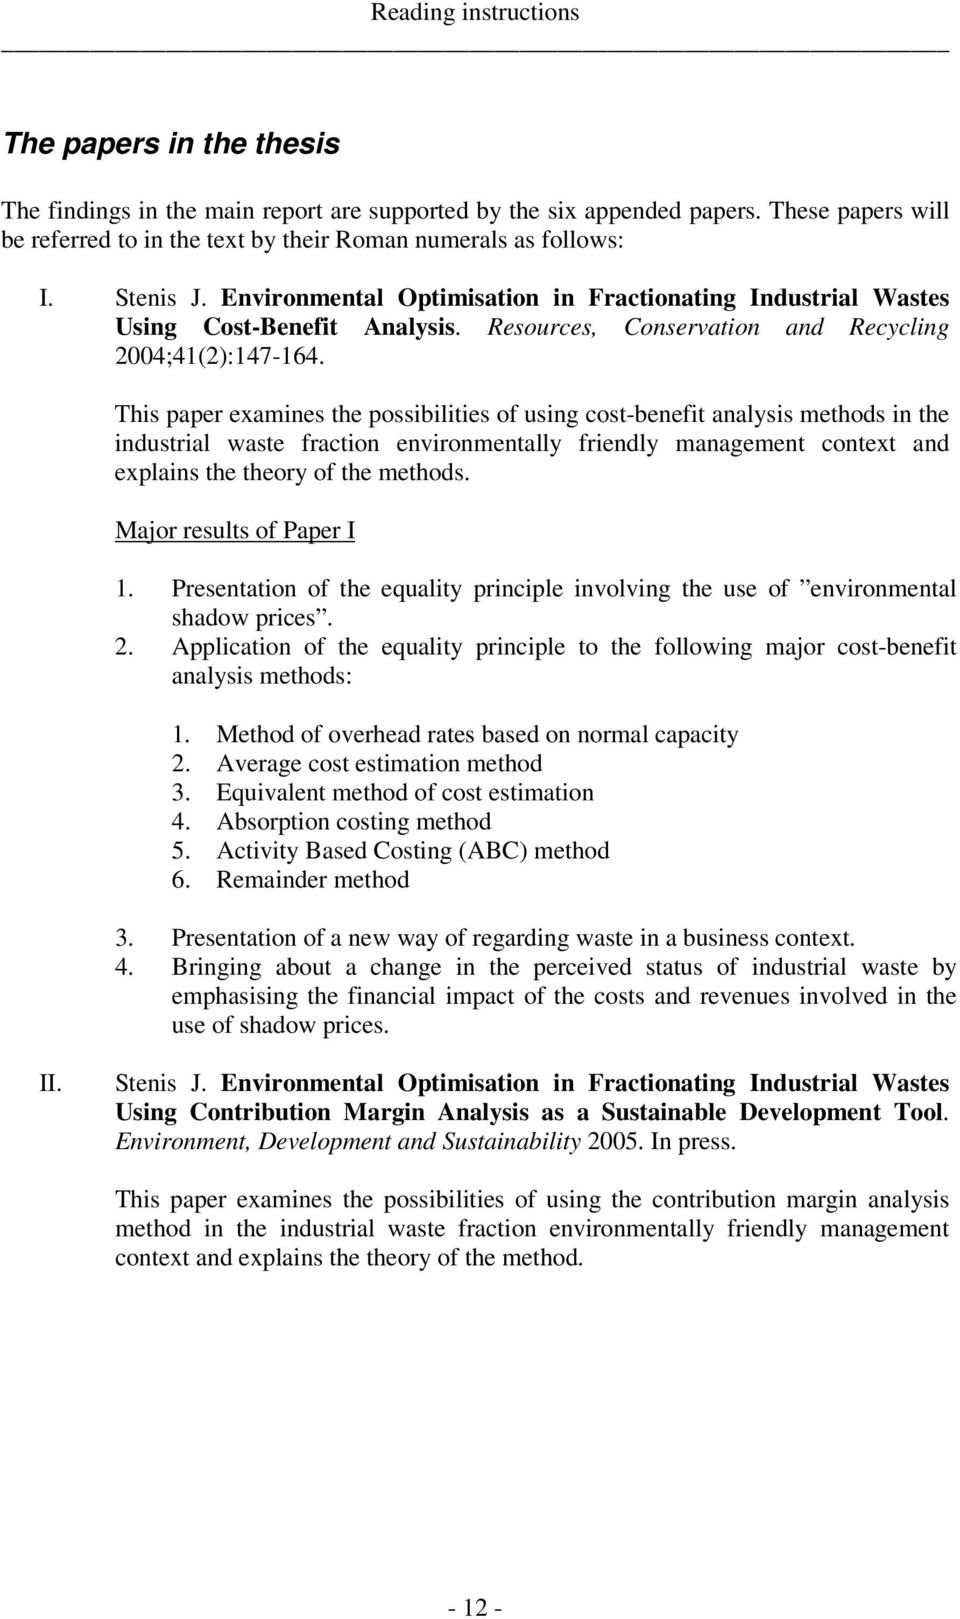 Resources, Conservation and Recycling 2004;41(2):147-164.